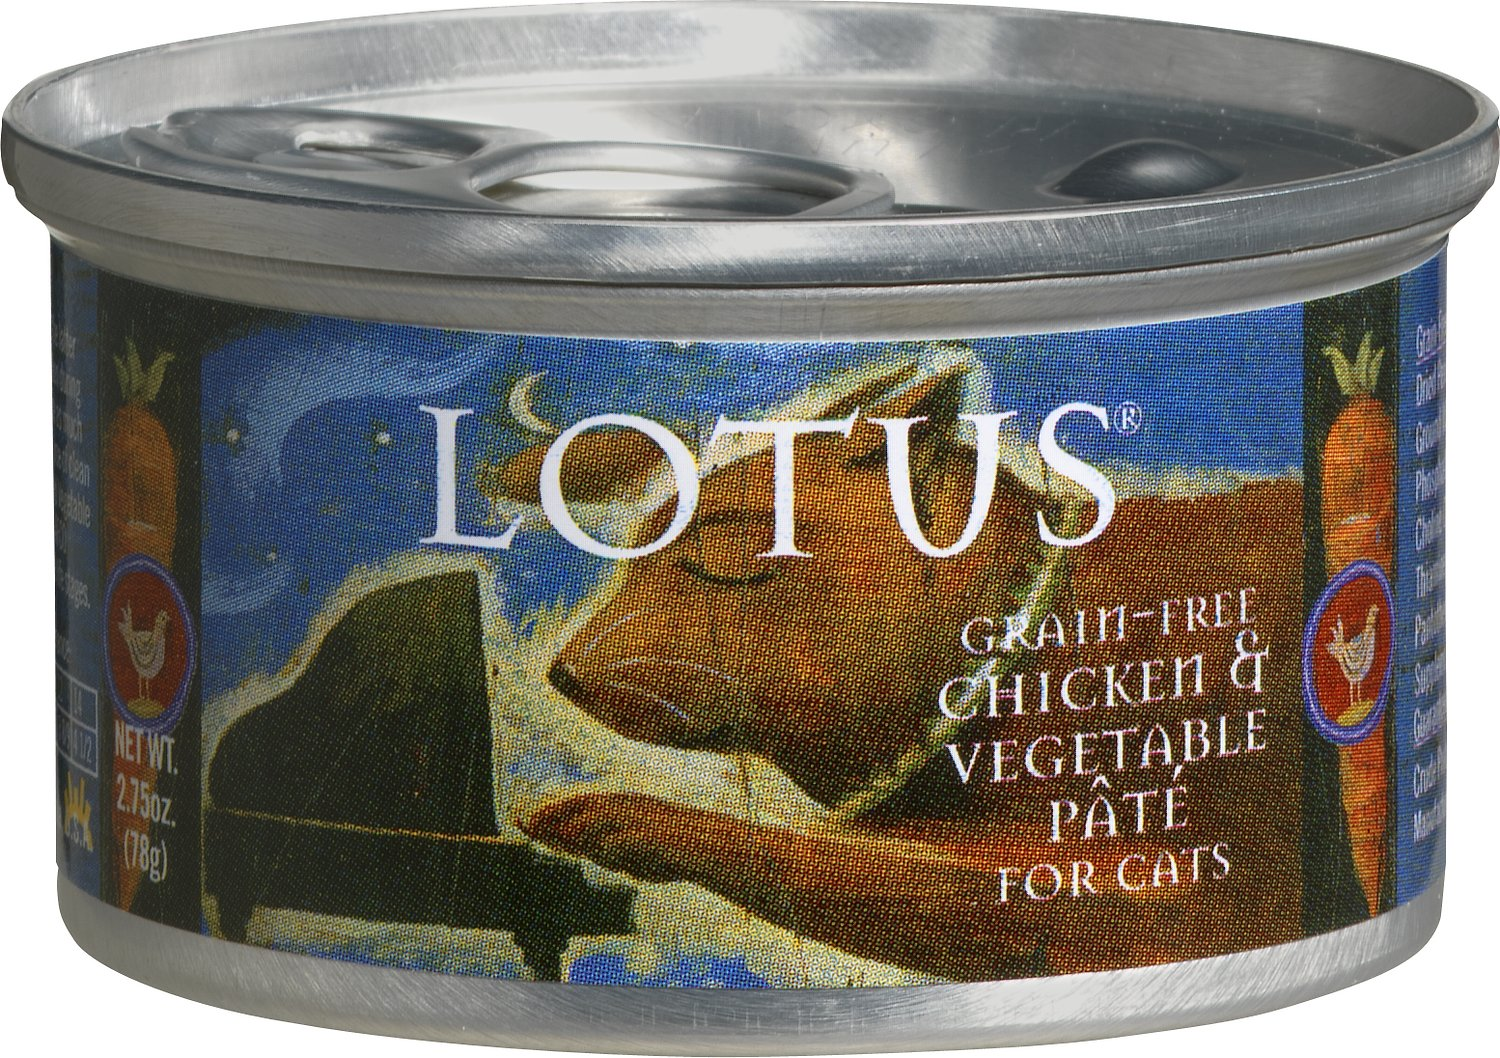 Lotus Chicken & Vegetable Pate Grain-Free Canned Cat Food, 5.5-oz